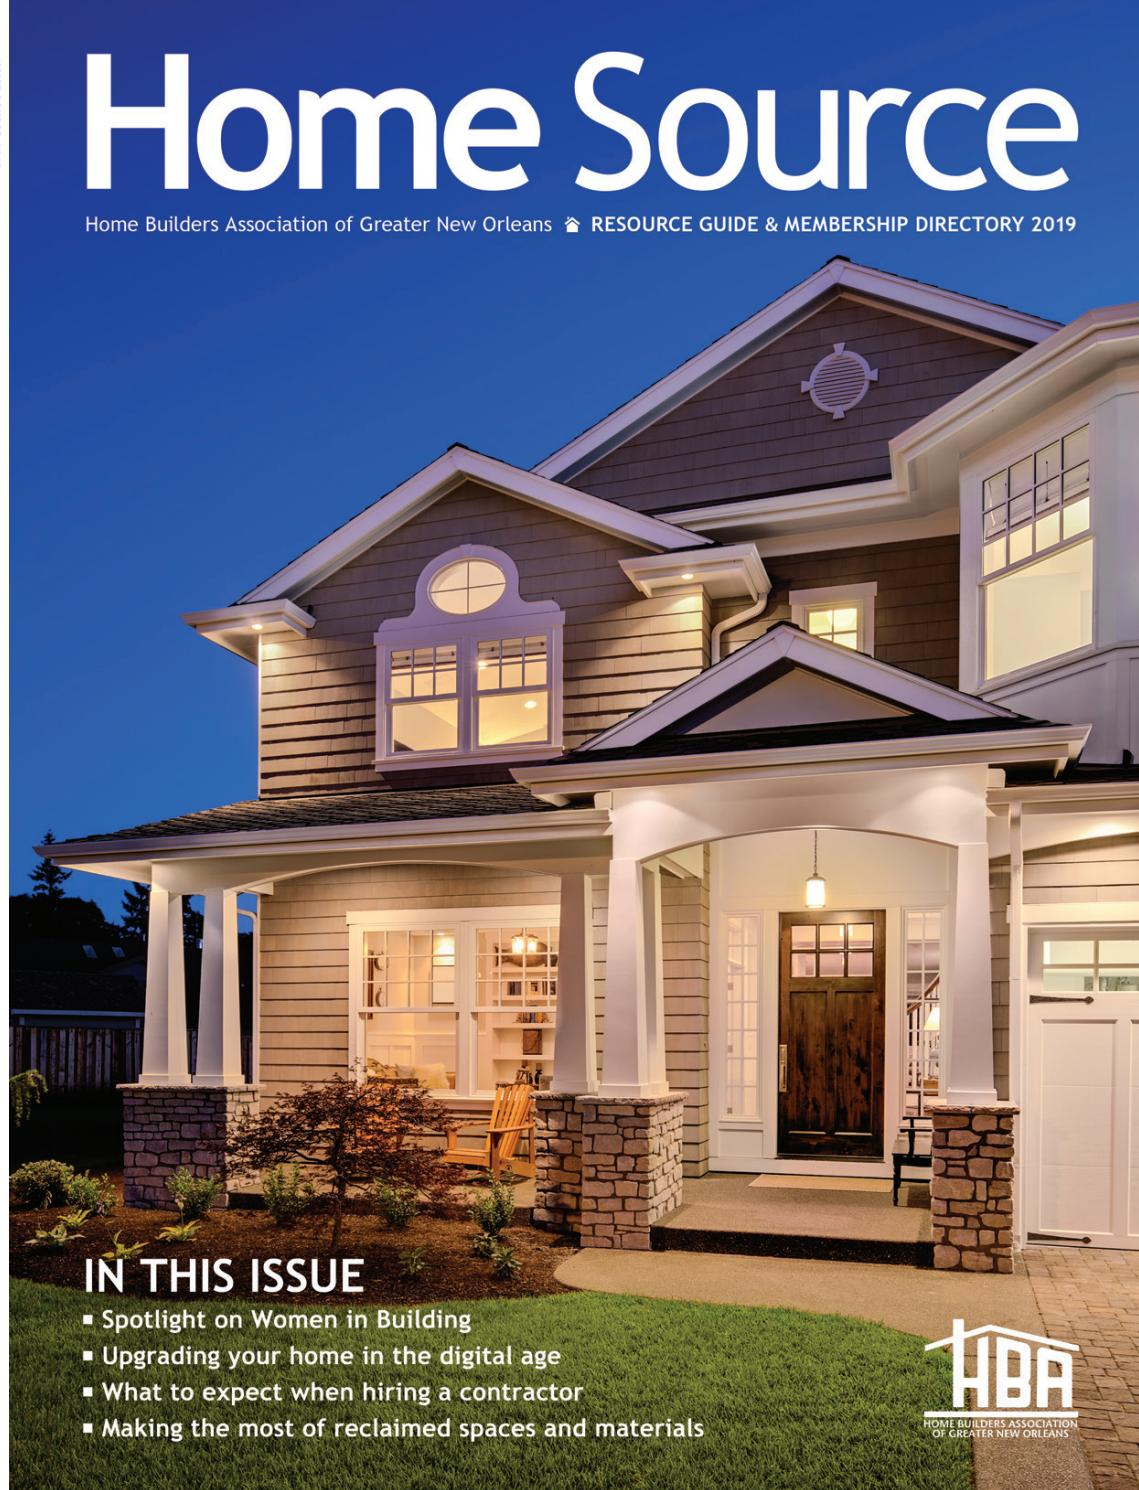 HBA Home Source 2019 by Renaissance Publishing - issuu